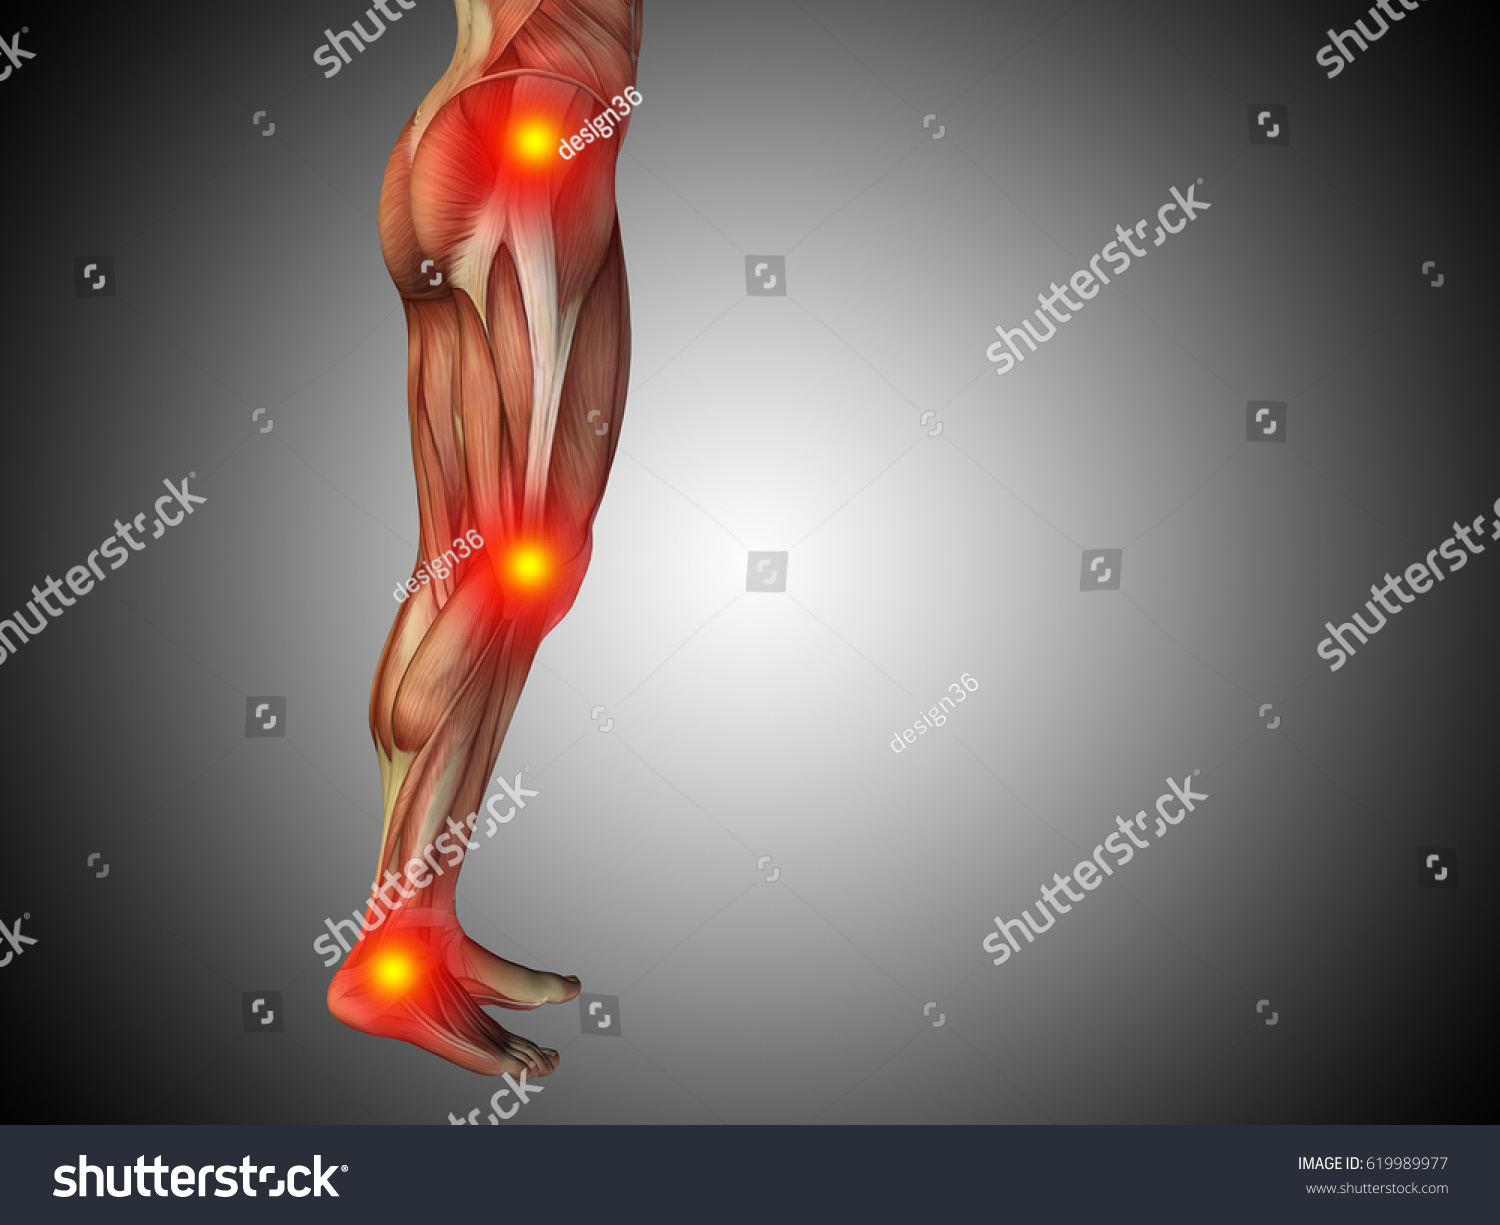 Conceptual 3d Illustration Of Human Man Anatomy Lower Body Or Health